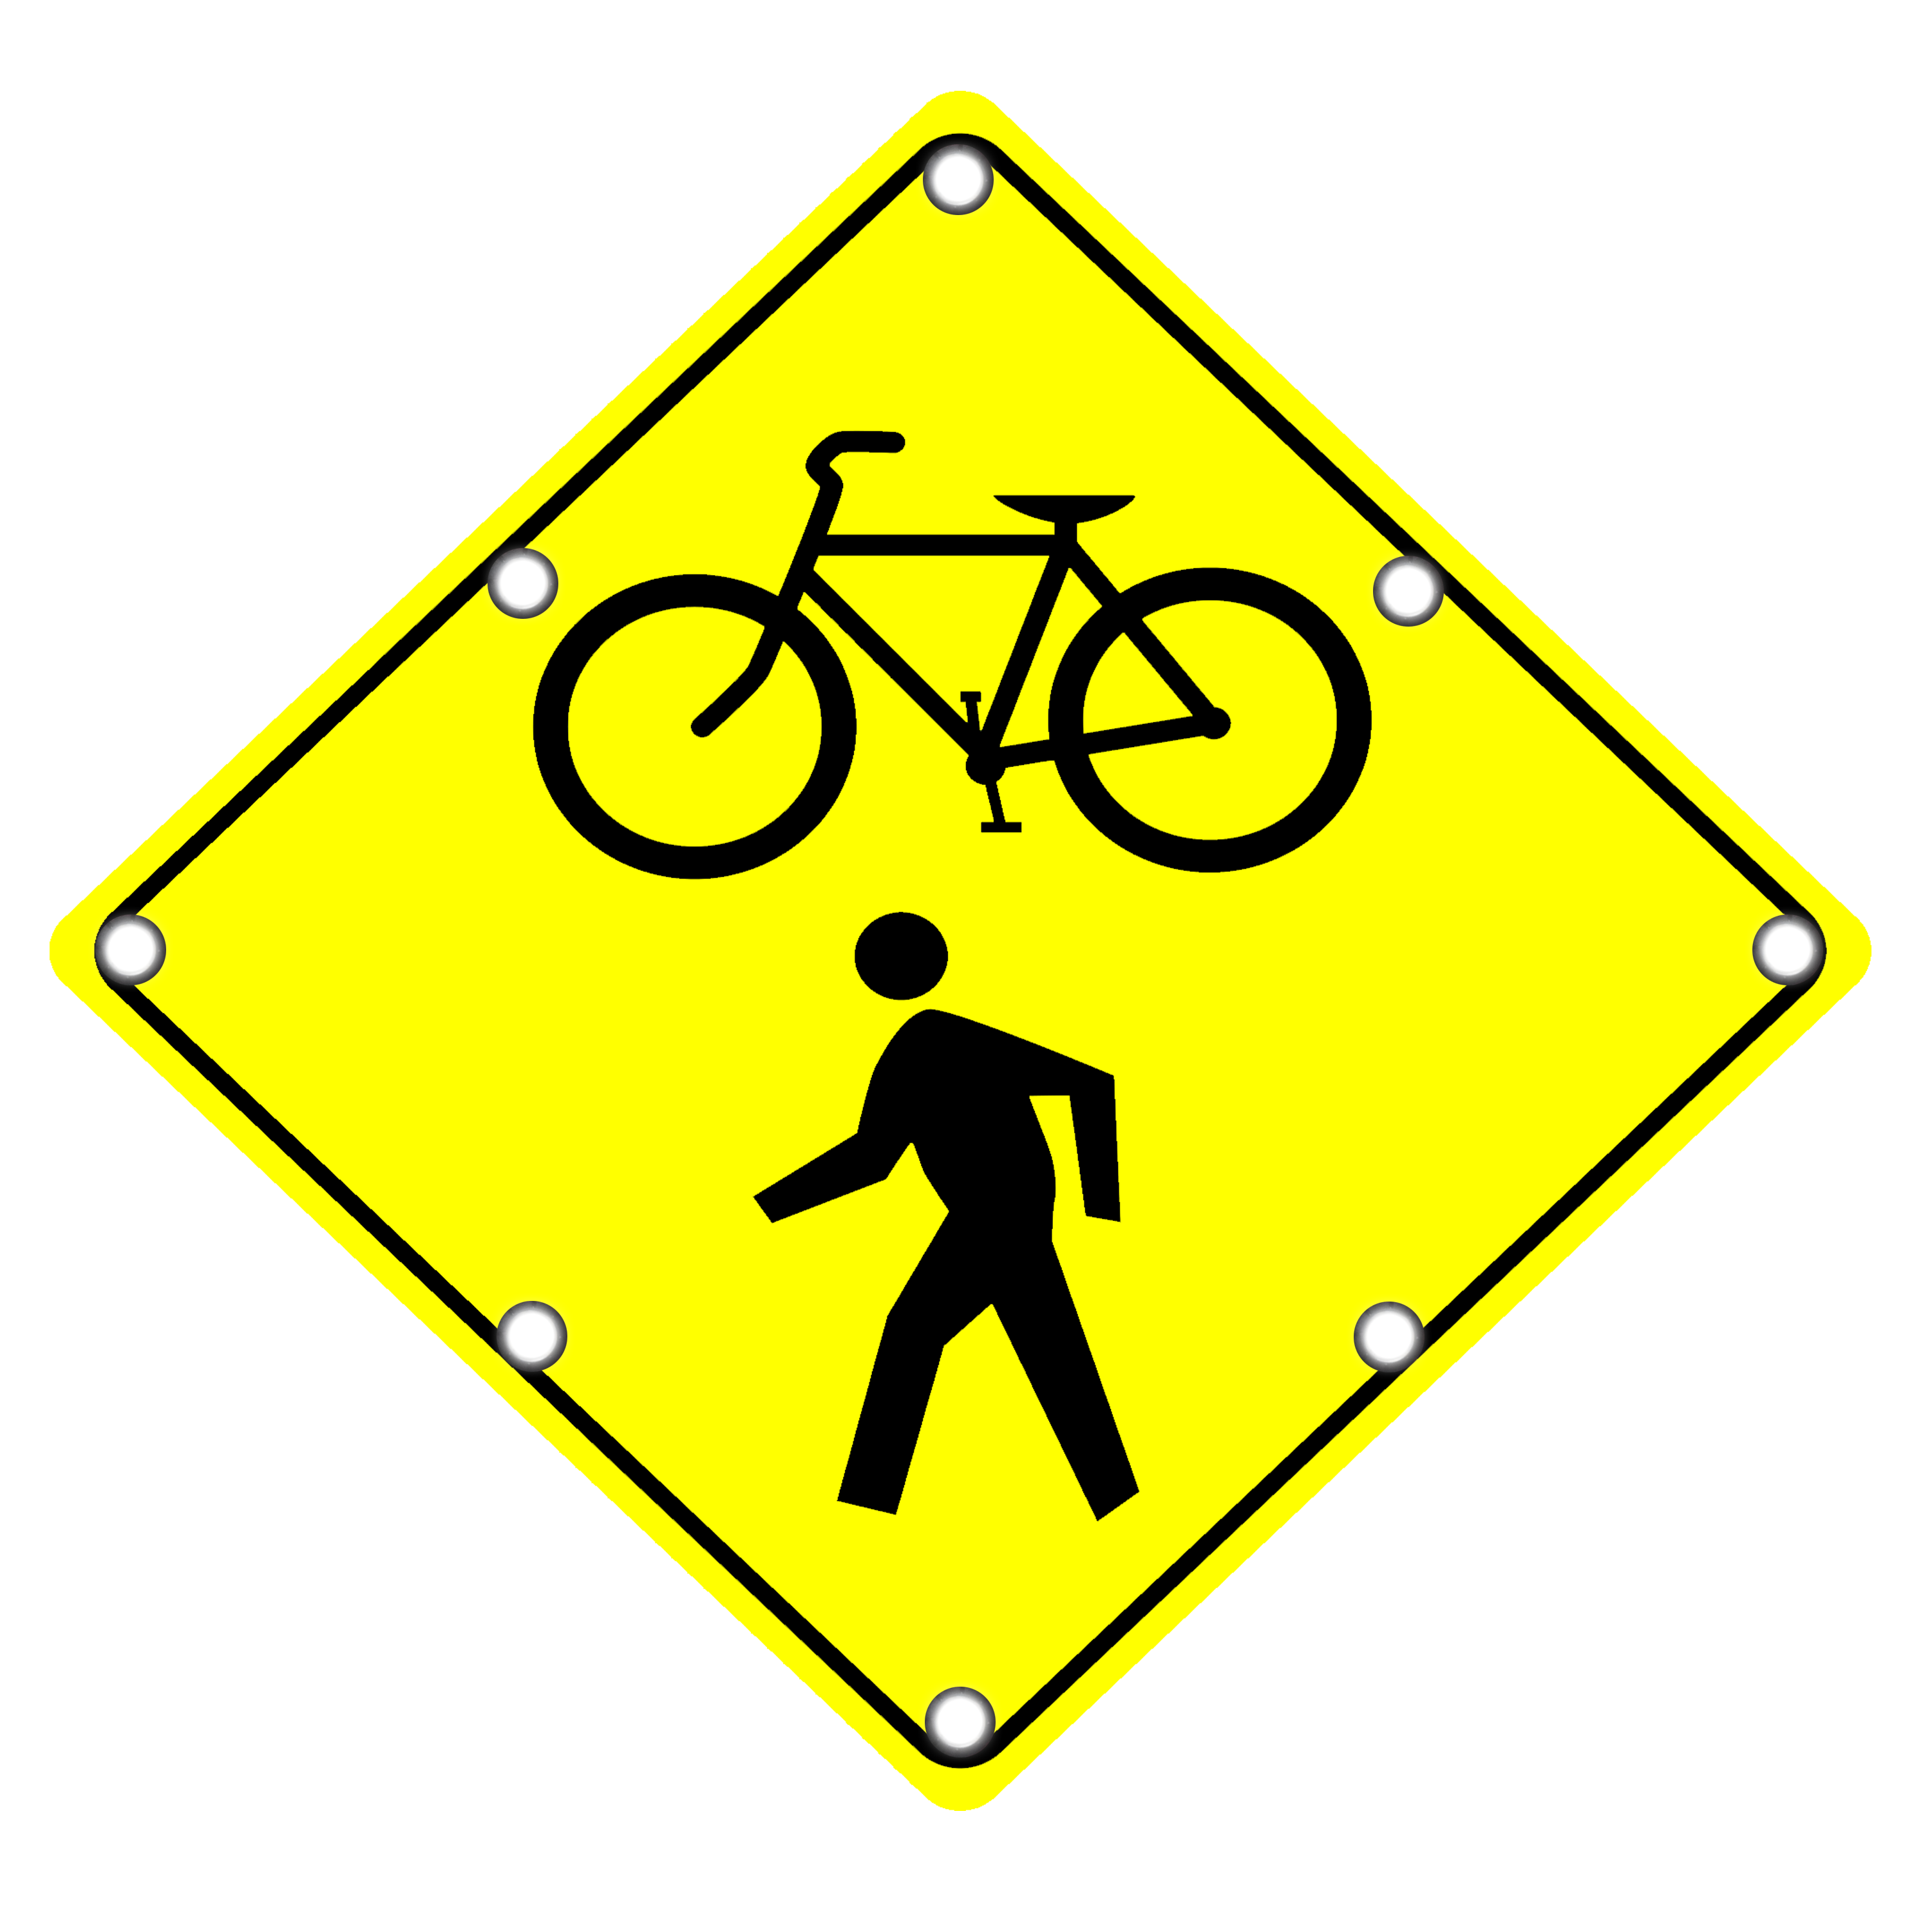 Image logo for Lighted Roadway Signs -  PEDESTRIAN/ BICYCLE CROSSING Sign